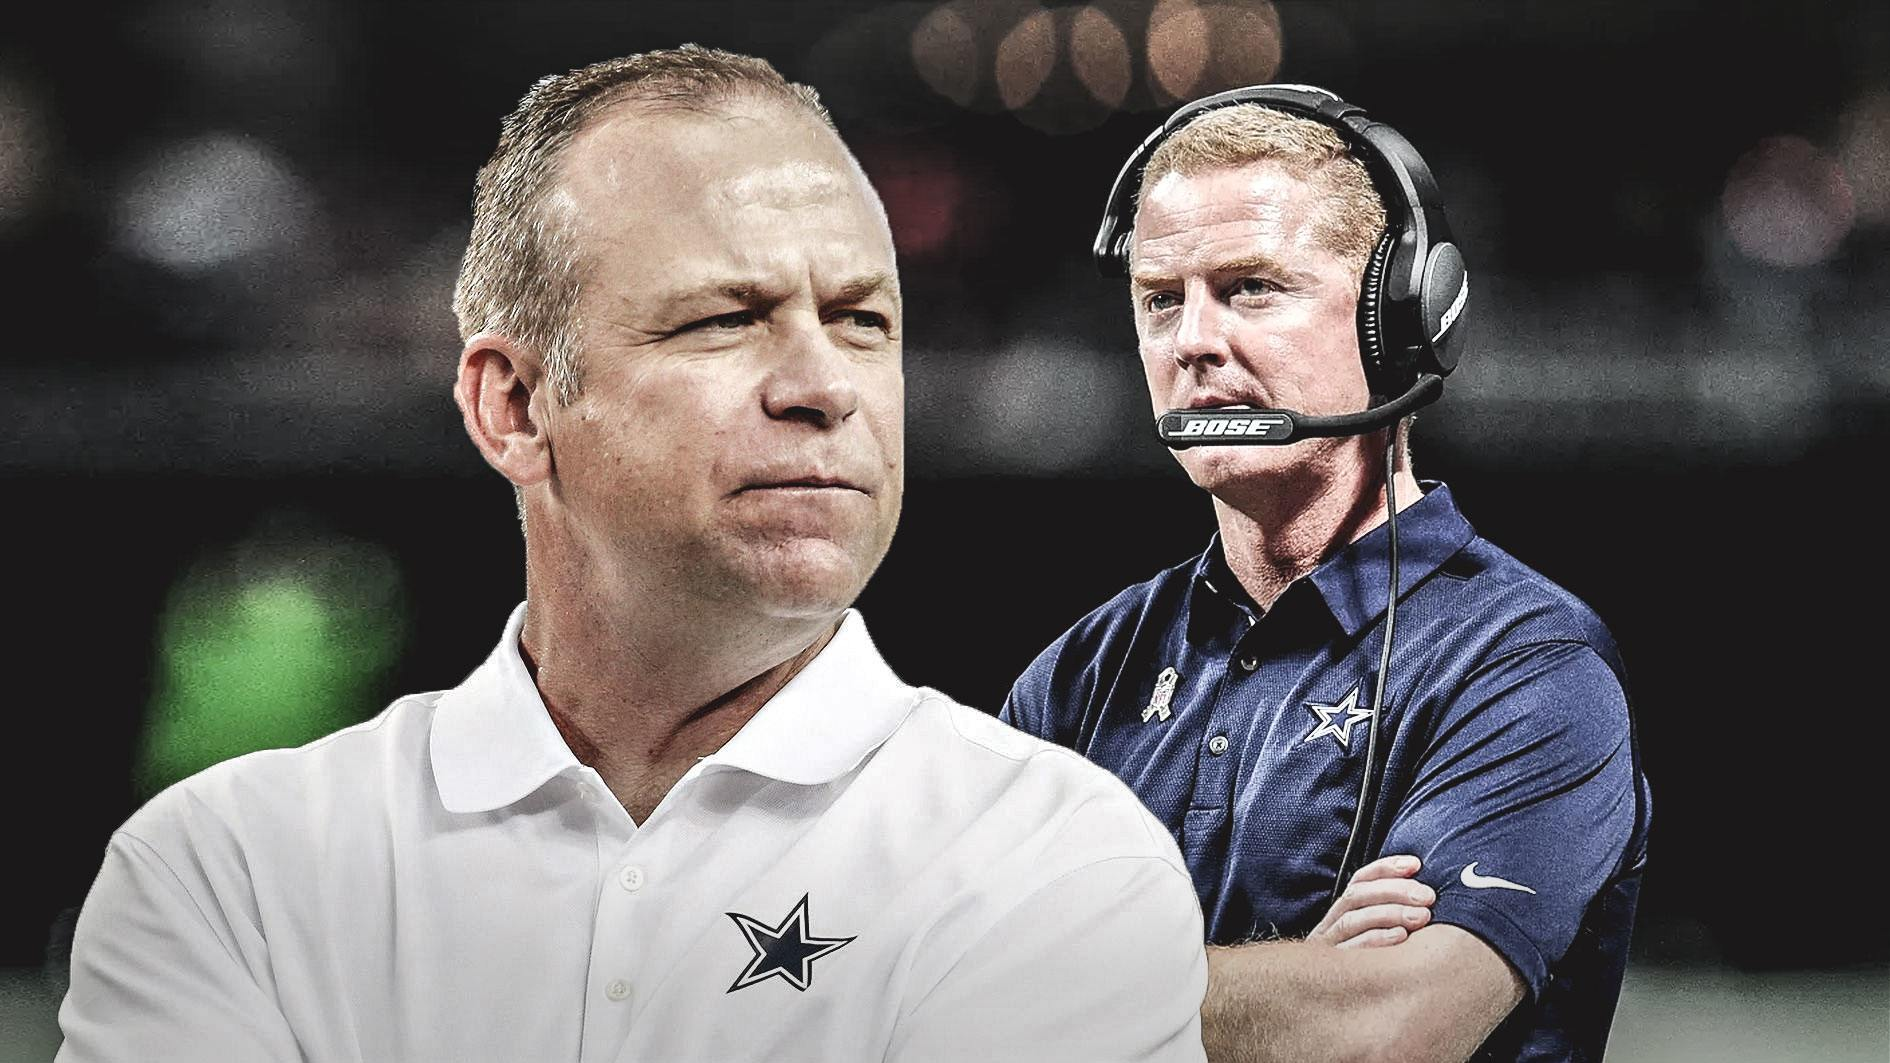 Jason Garrett Can't be Serious About Retaining Scott Linehan, Can He?